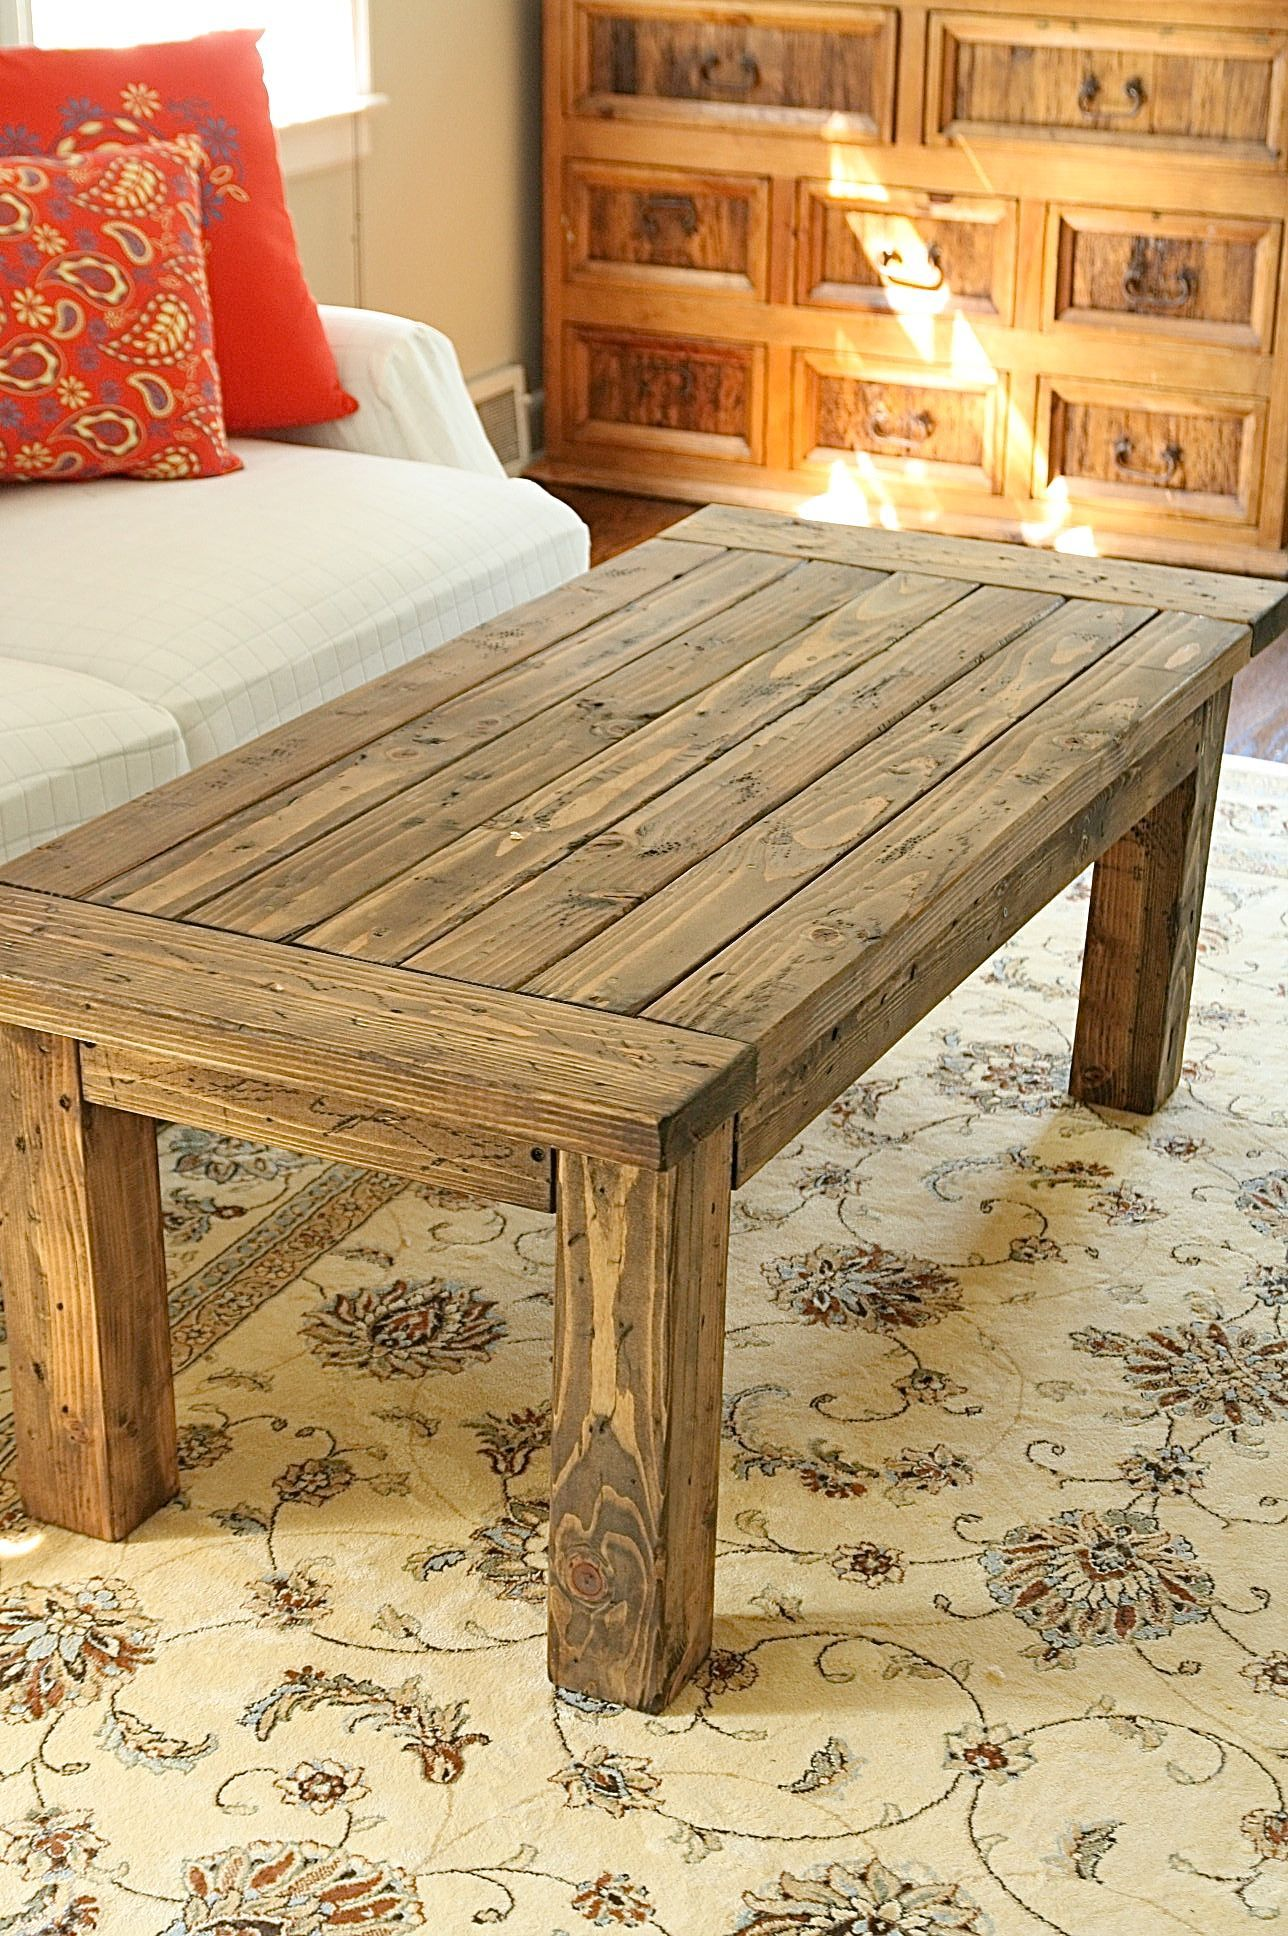 Coffee Table Do It Yourself Home Projects From Ana White Diy Pinterest Do It Yourself